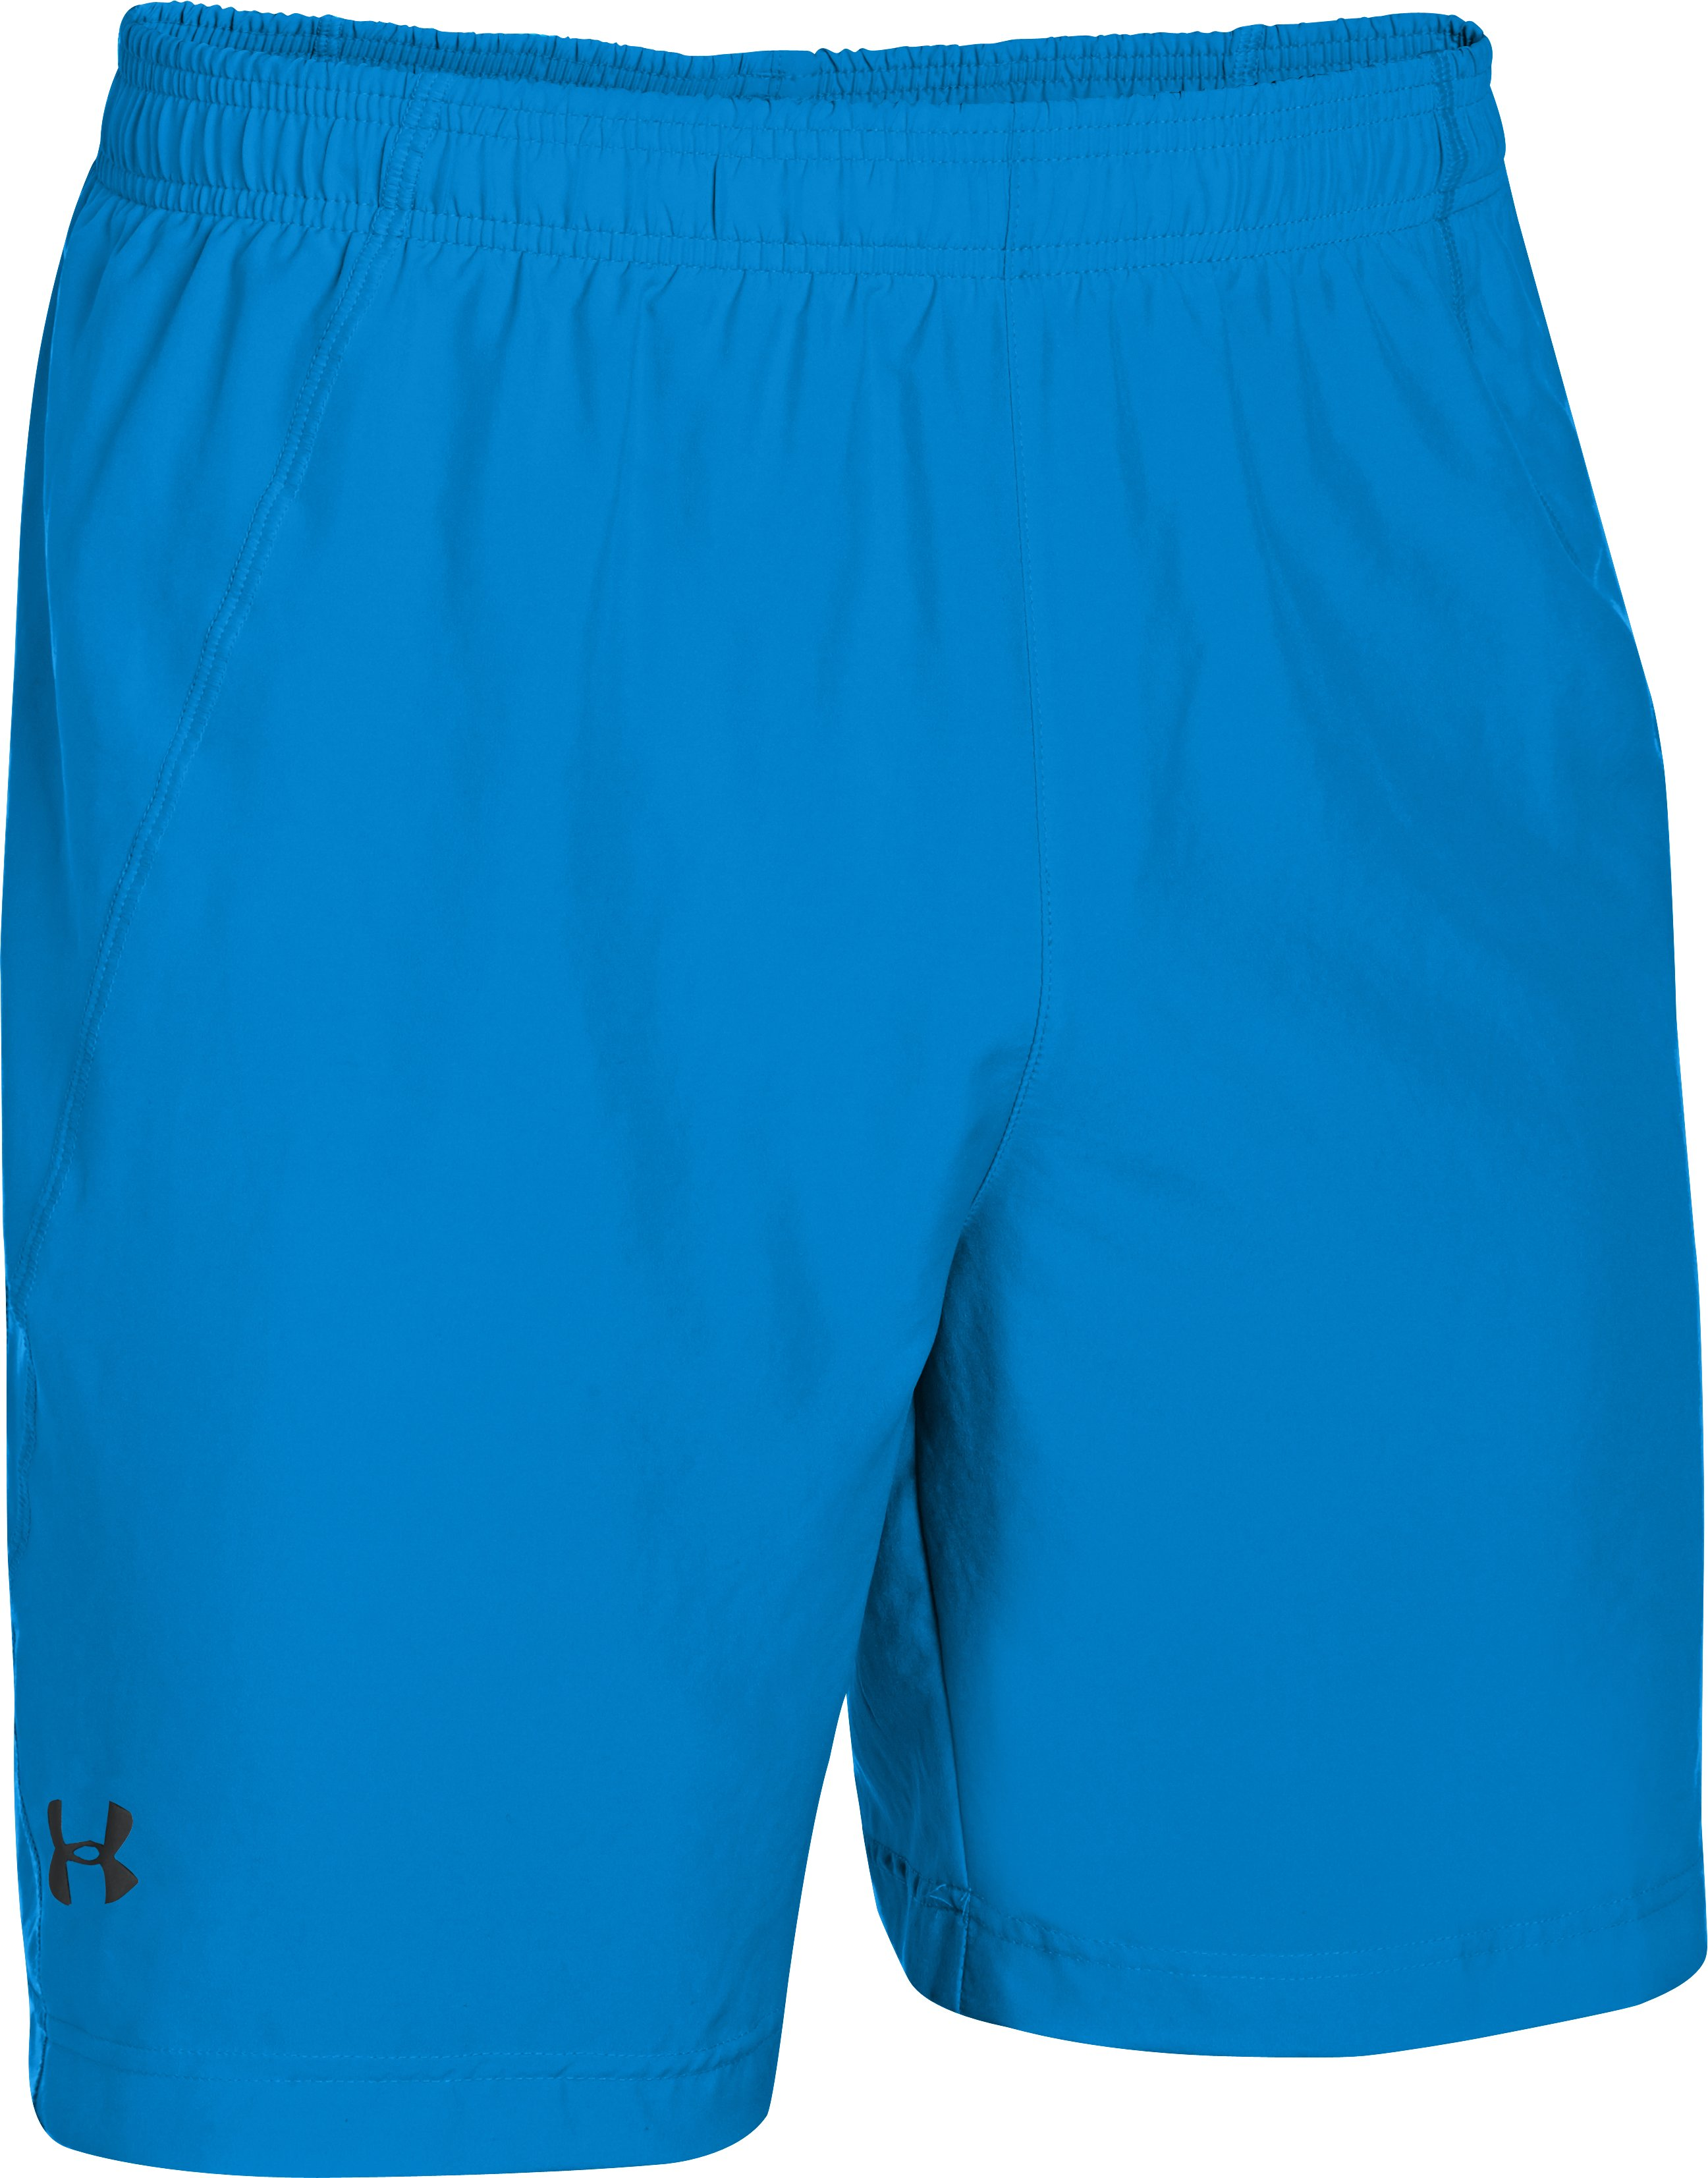 "Men's UA Run 7"" Shorts, ELECTRIC BLUE, undefined"